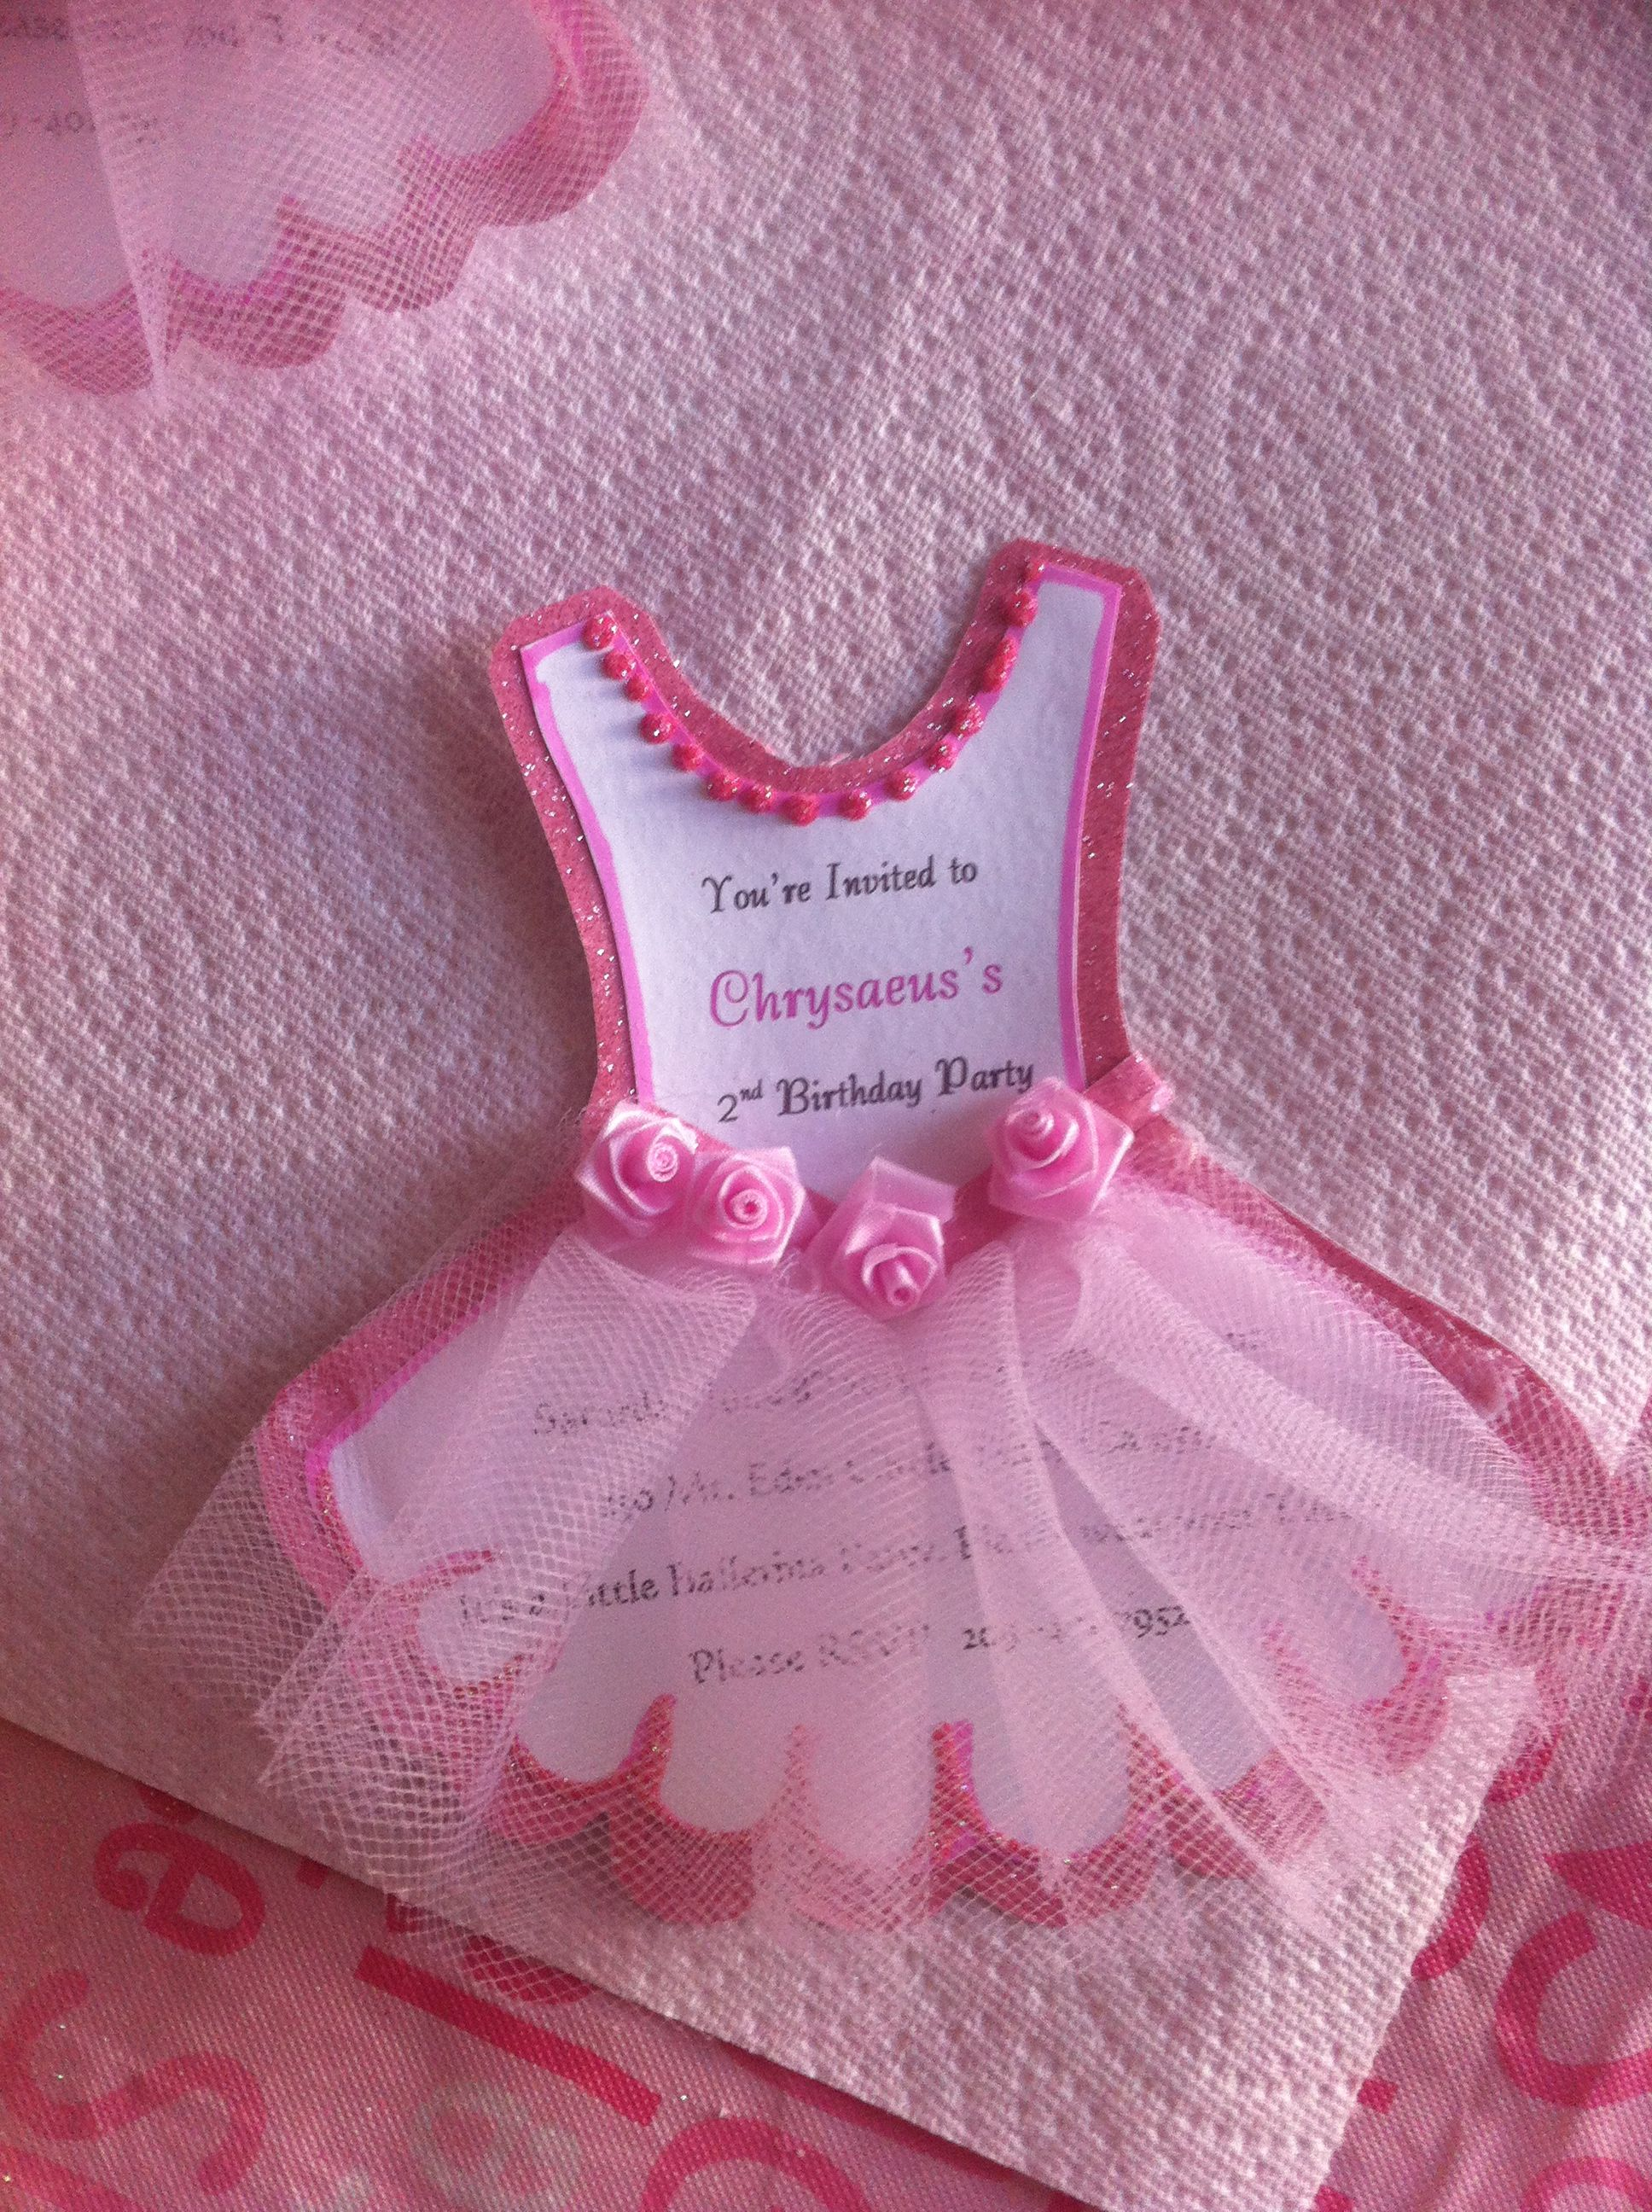 Chrysaeus\'s ballerina invitations! | babyshower ideas | Pinterest ...